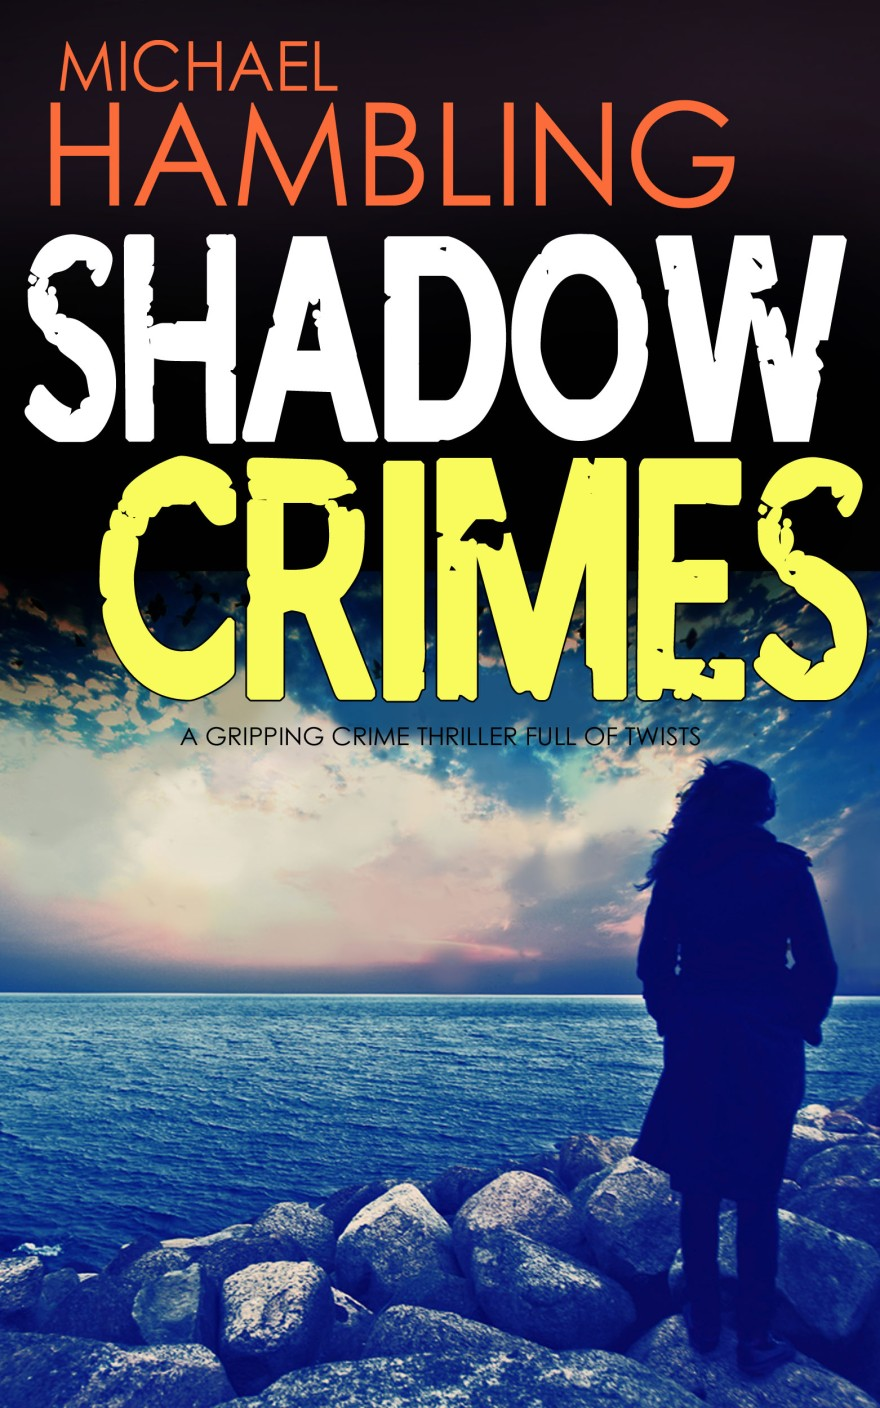 SHADOW CRIMES publish